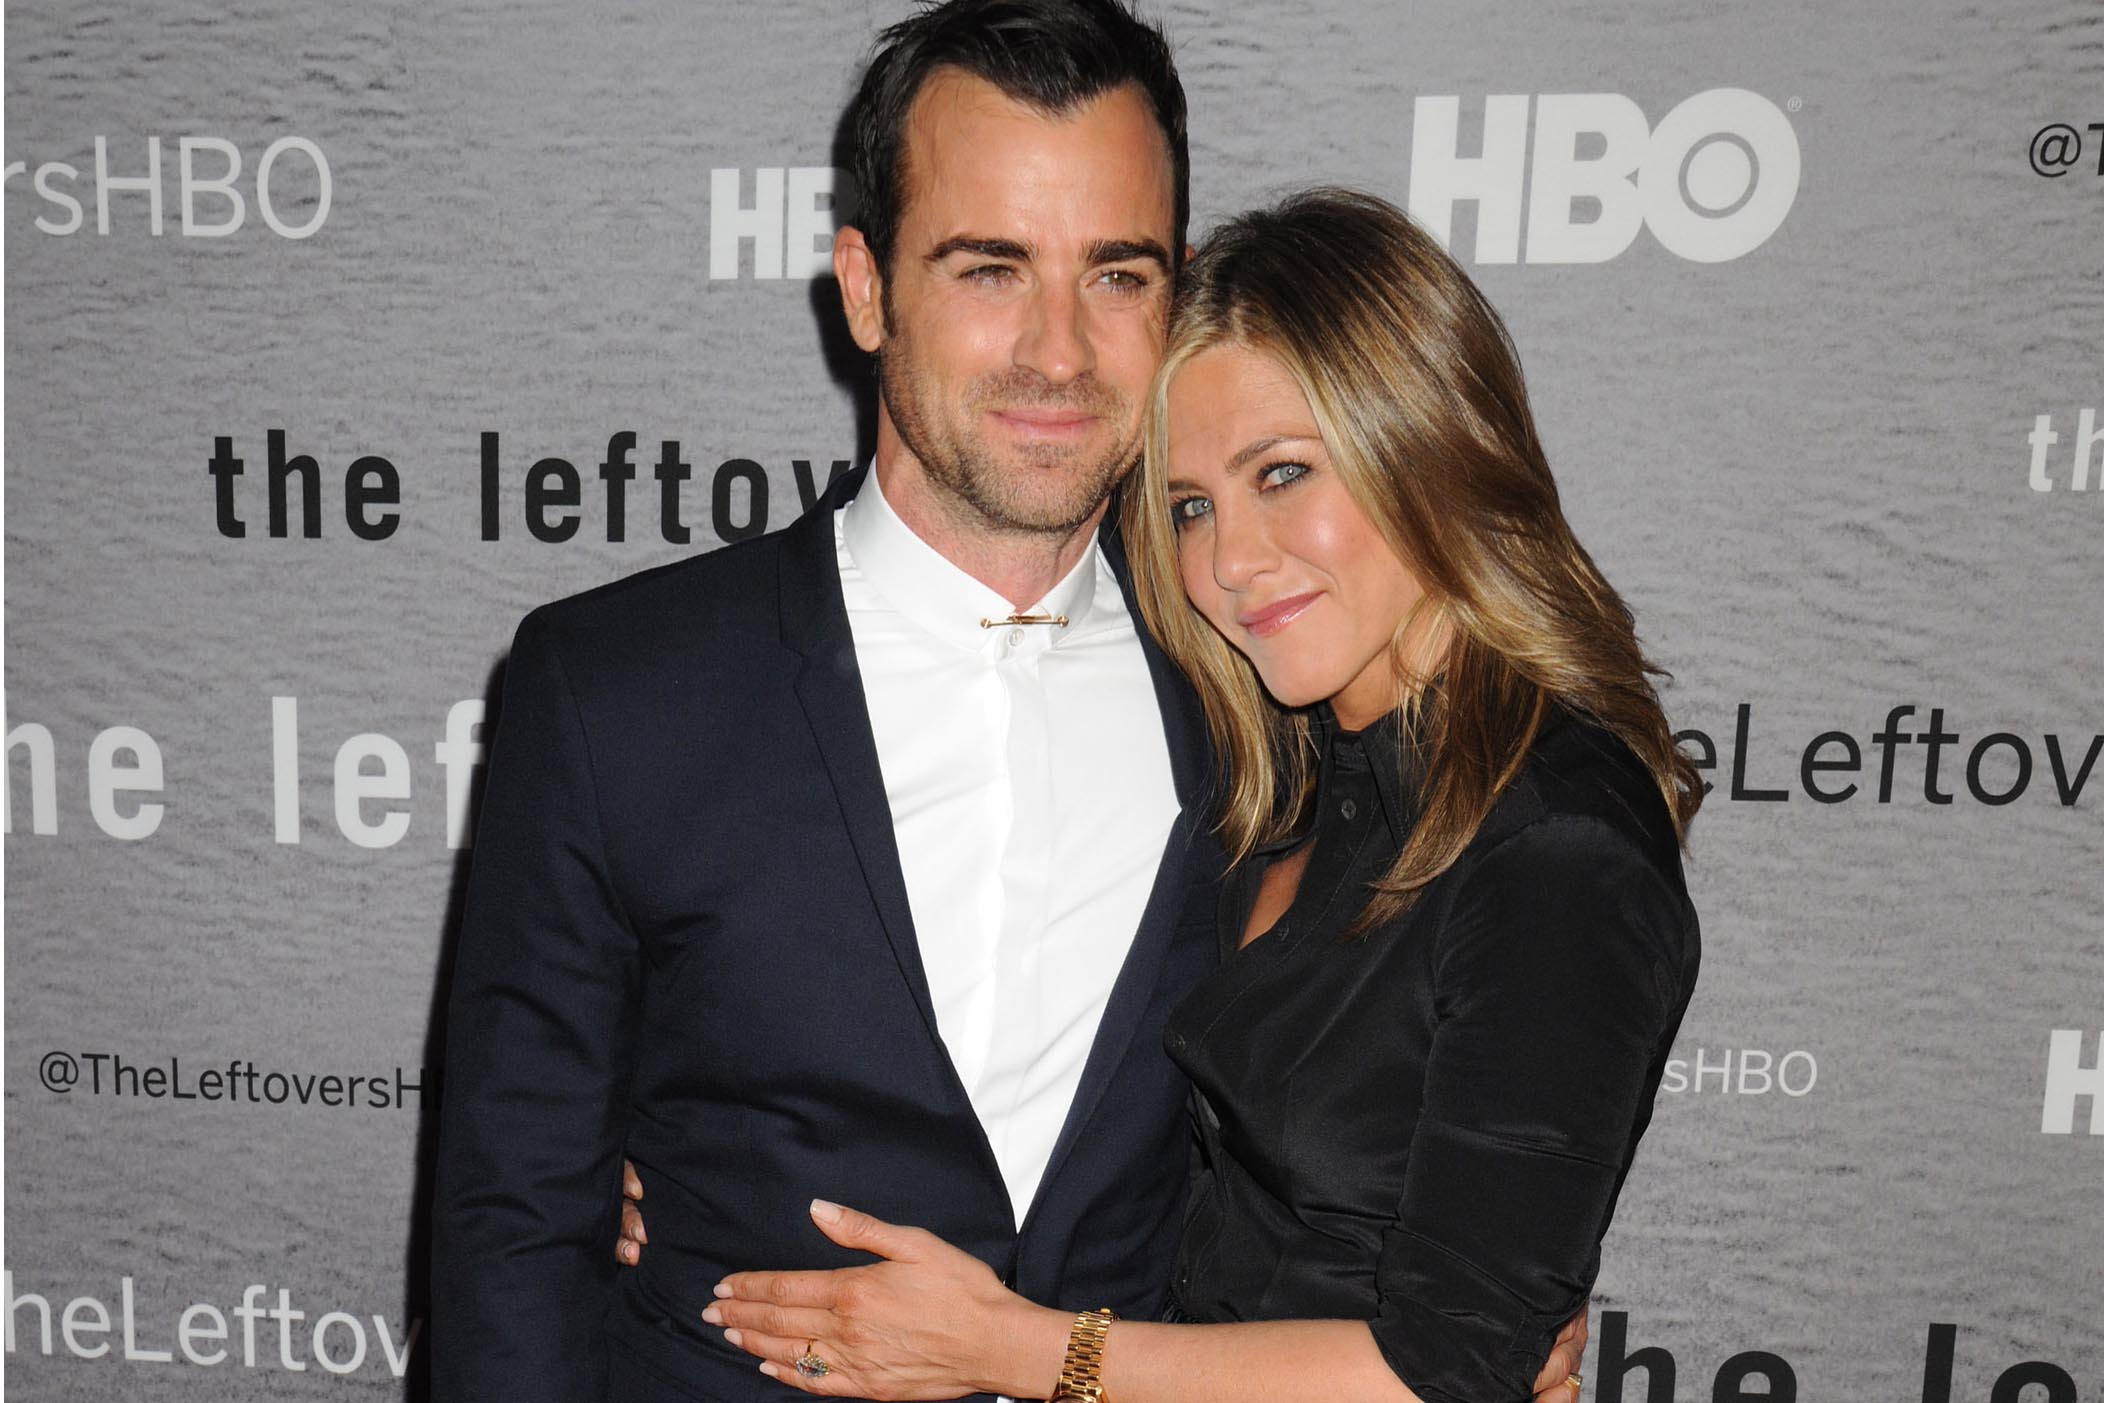 "Consciously coupled lovebirds actors Justin Theroux (star of the series) and Jennifer Aniston arrive for the New York Premiere of HBO's new series ""The Leftovers"", held at the NYU Skirball Center in Greenwich Village in NYC Pictured: Justin Theroux and Jennifer Aniston Ref: SPL786039 230614 Picture by: Johns PKI/Splash News Splash News and Pictures Los Angeles: 310-821-2666 New York: 212-619-2666 London: 870-934-2666 photodesk@splashnews.com"